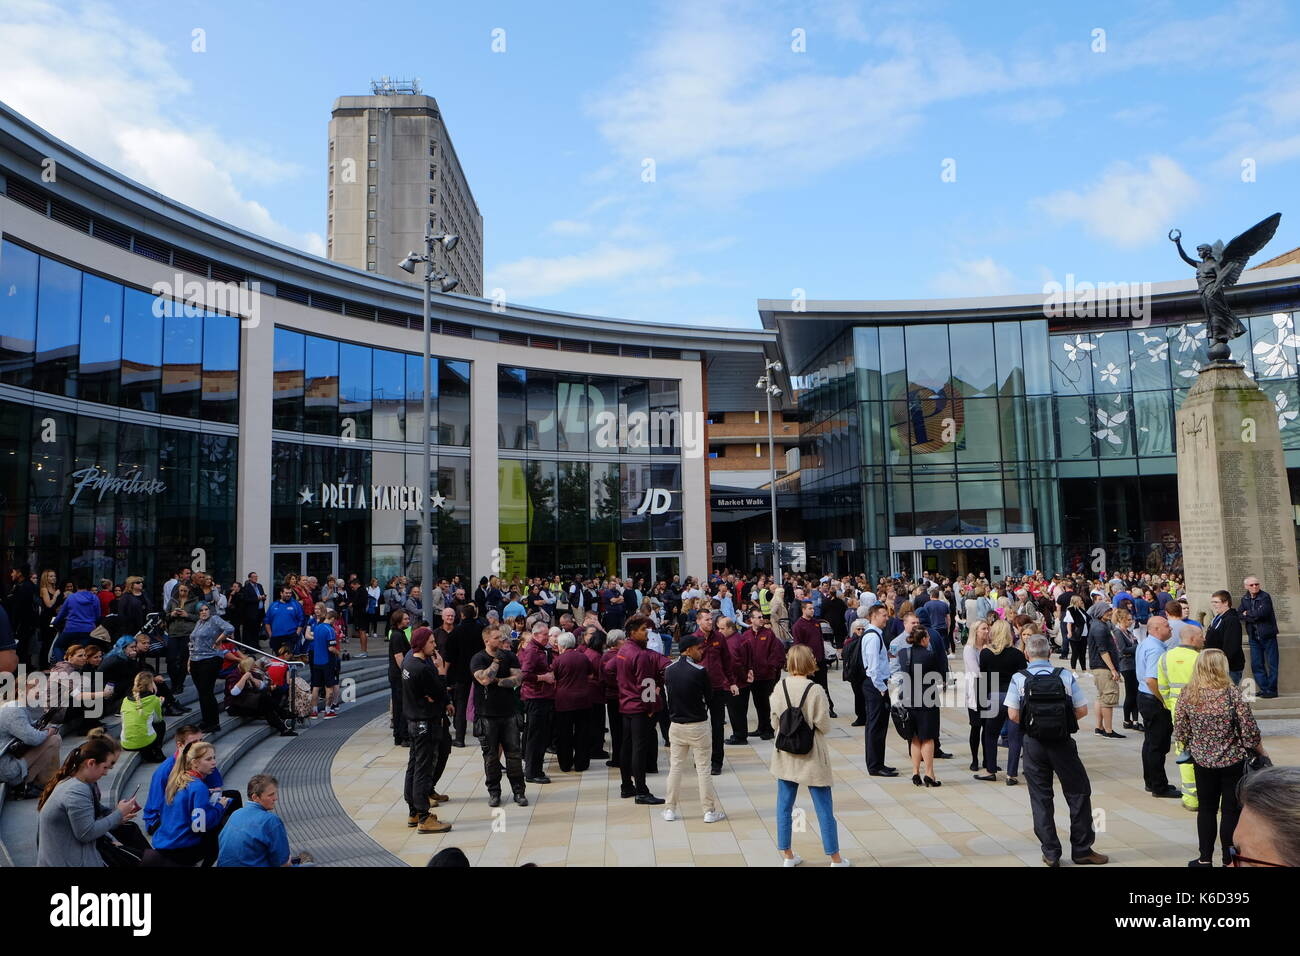 Woking, UK. 12th Sept. 2017. Shoppers gather in Jubilee Square after being evacuated from The Peacocks and Wolsey Place shopping centres, Woking. Credit: Jason Wood/Alamy Live News - Stock Image